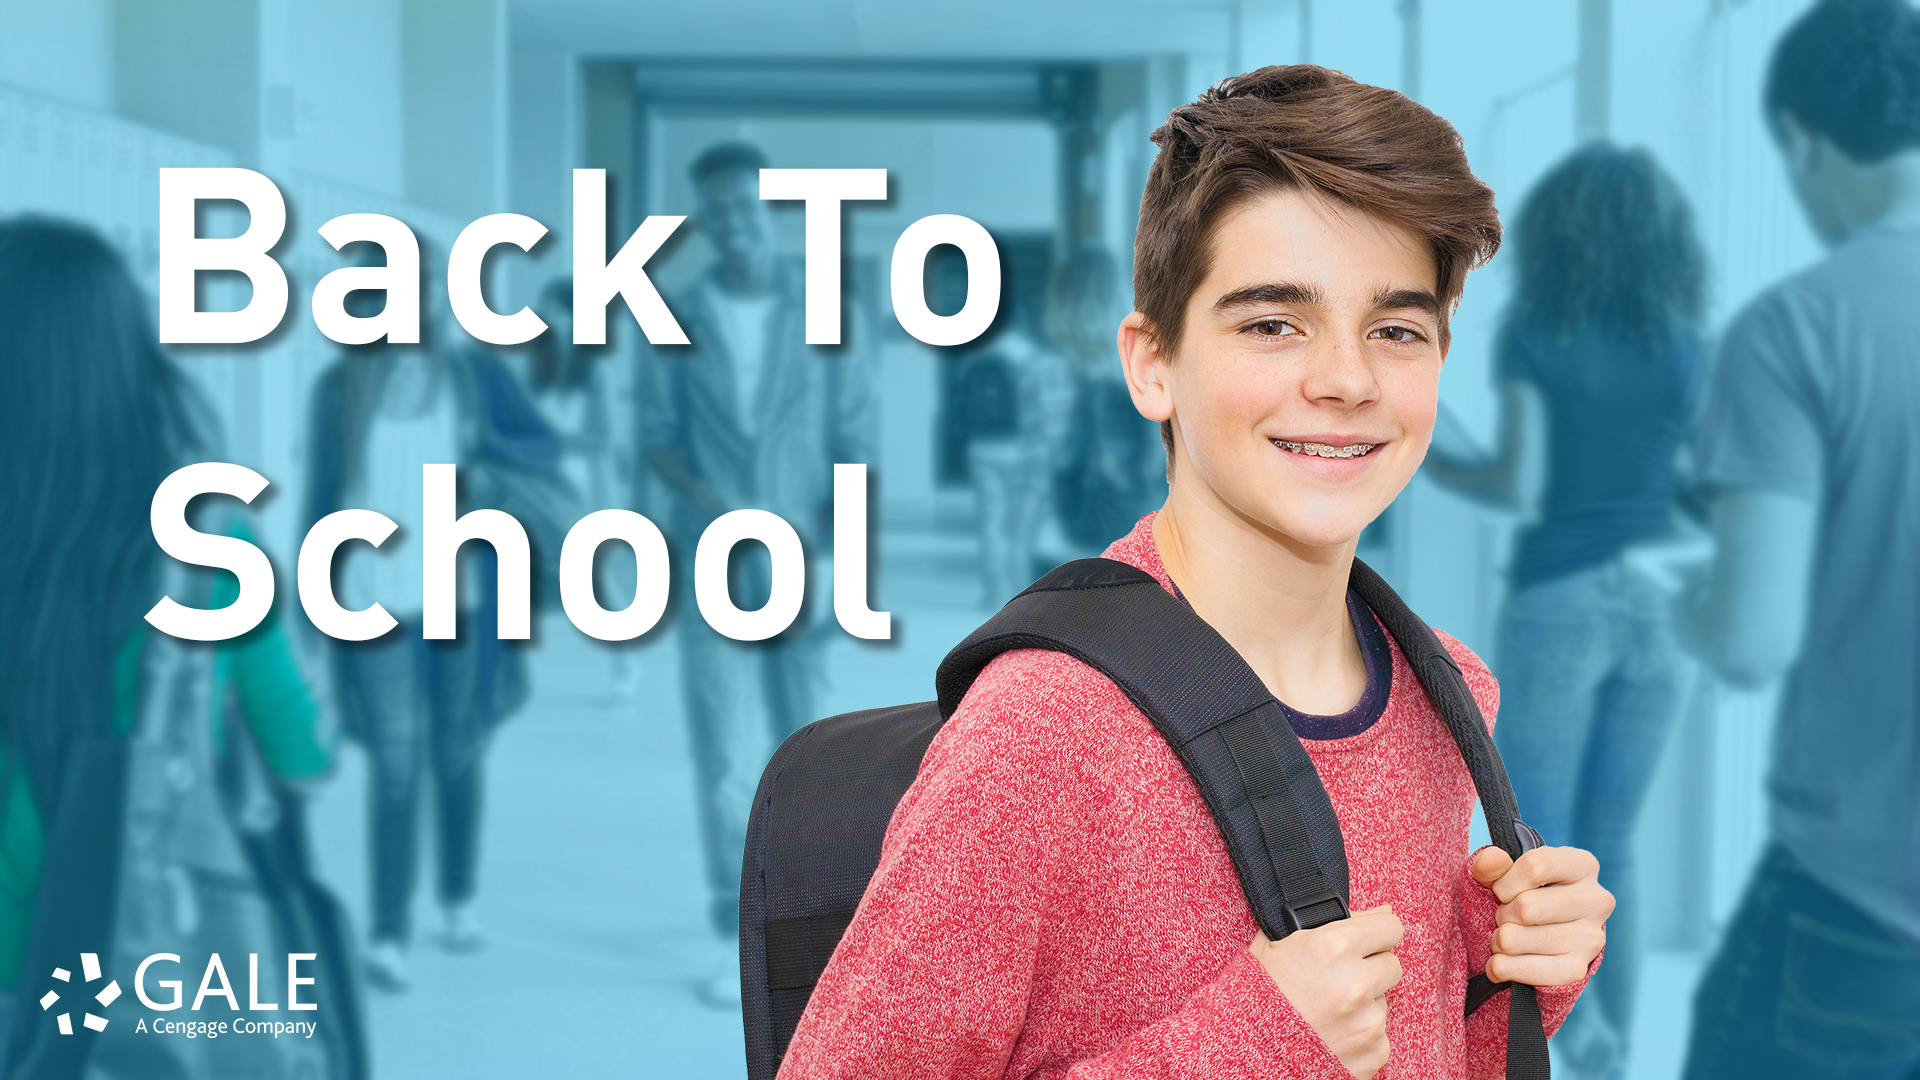 Back To School with ELM Thumbnail